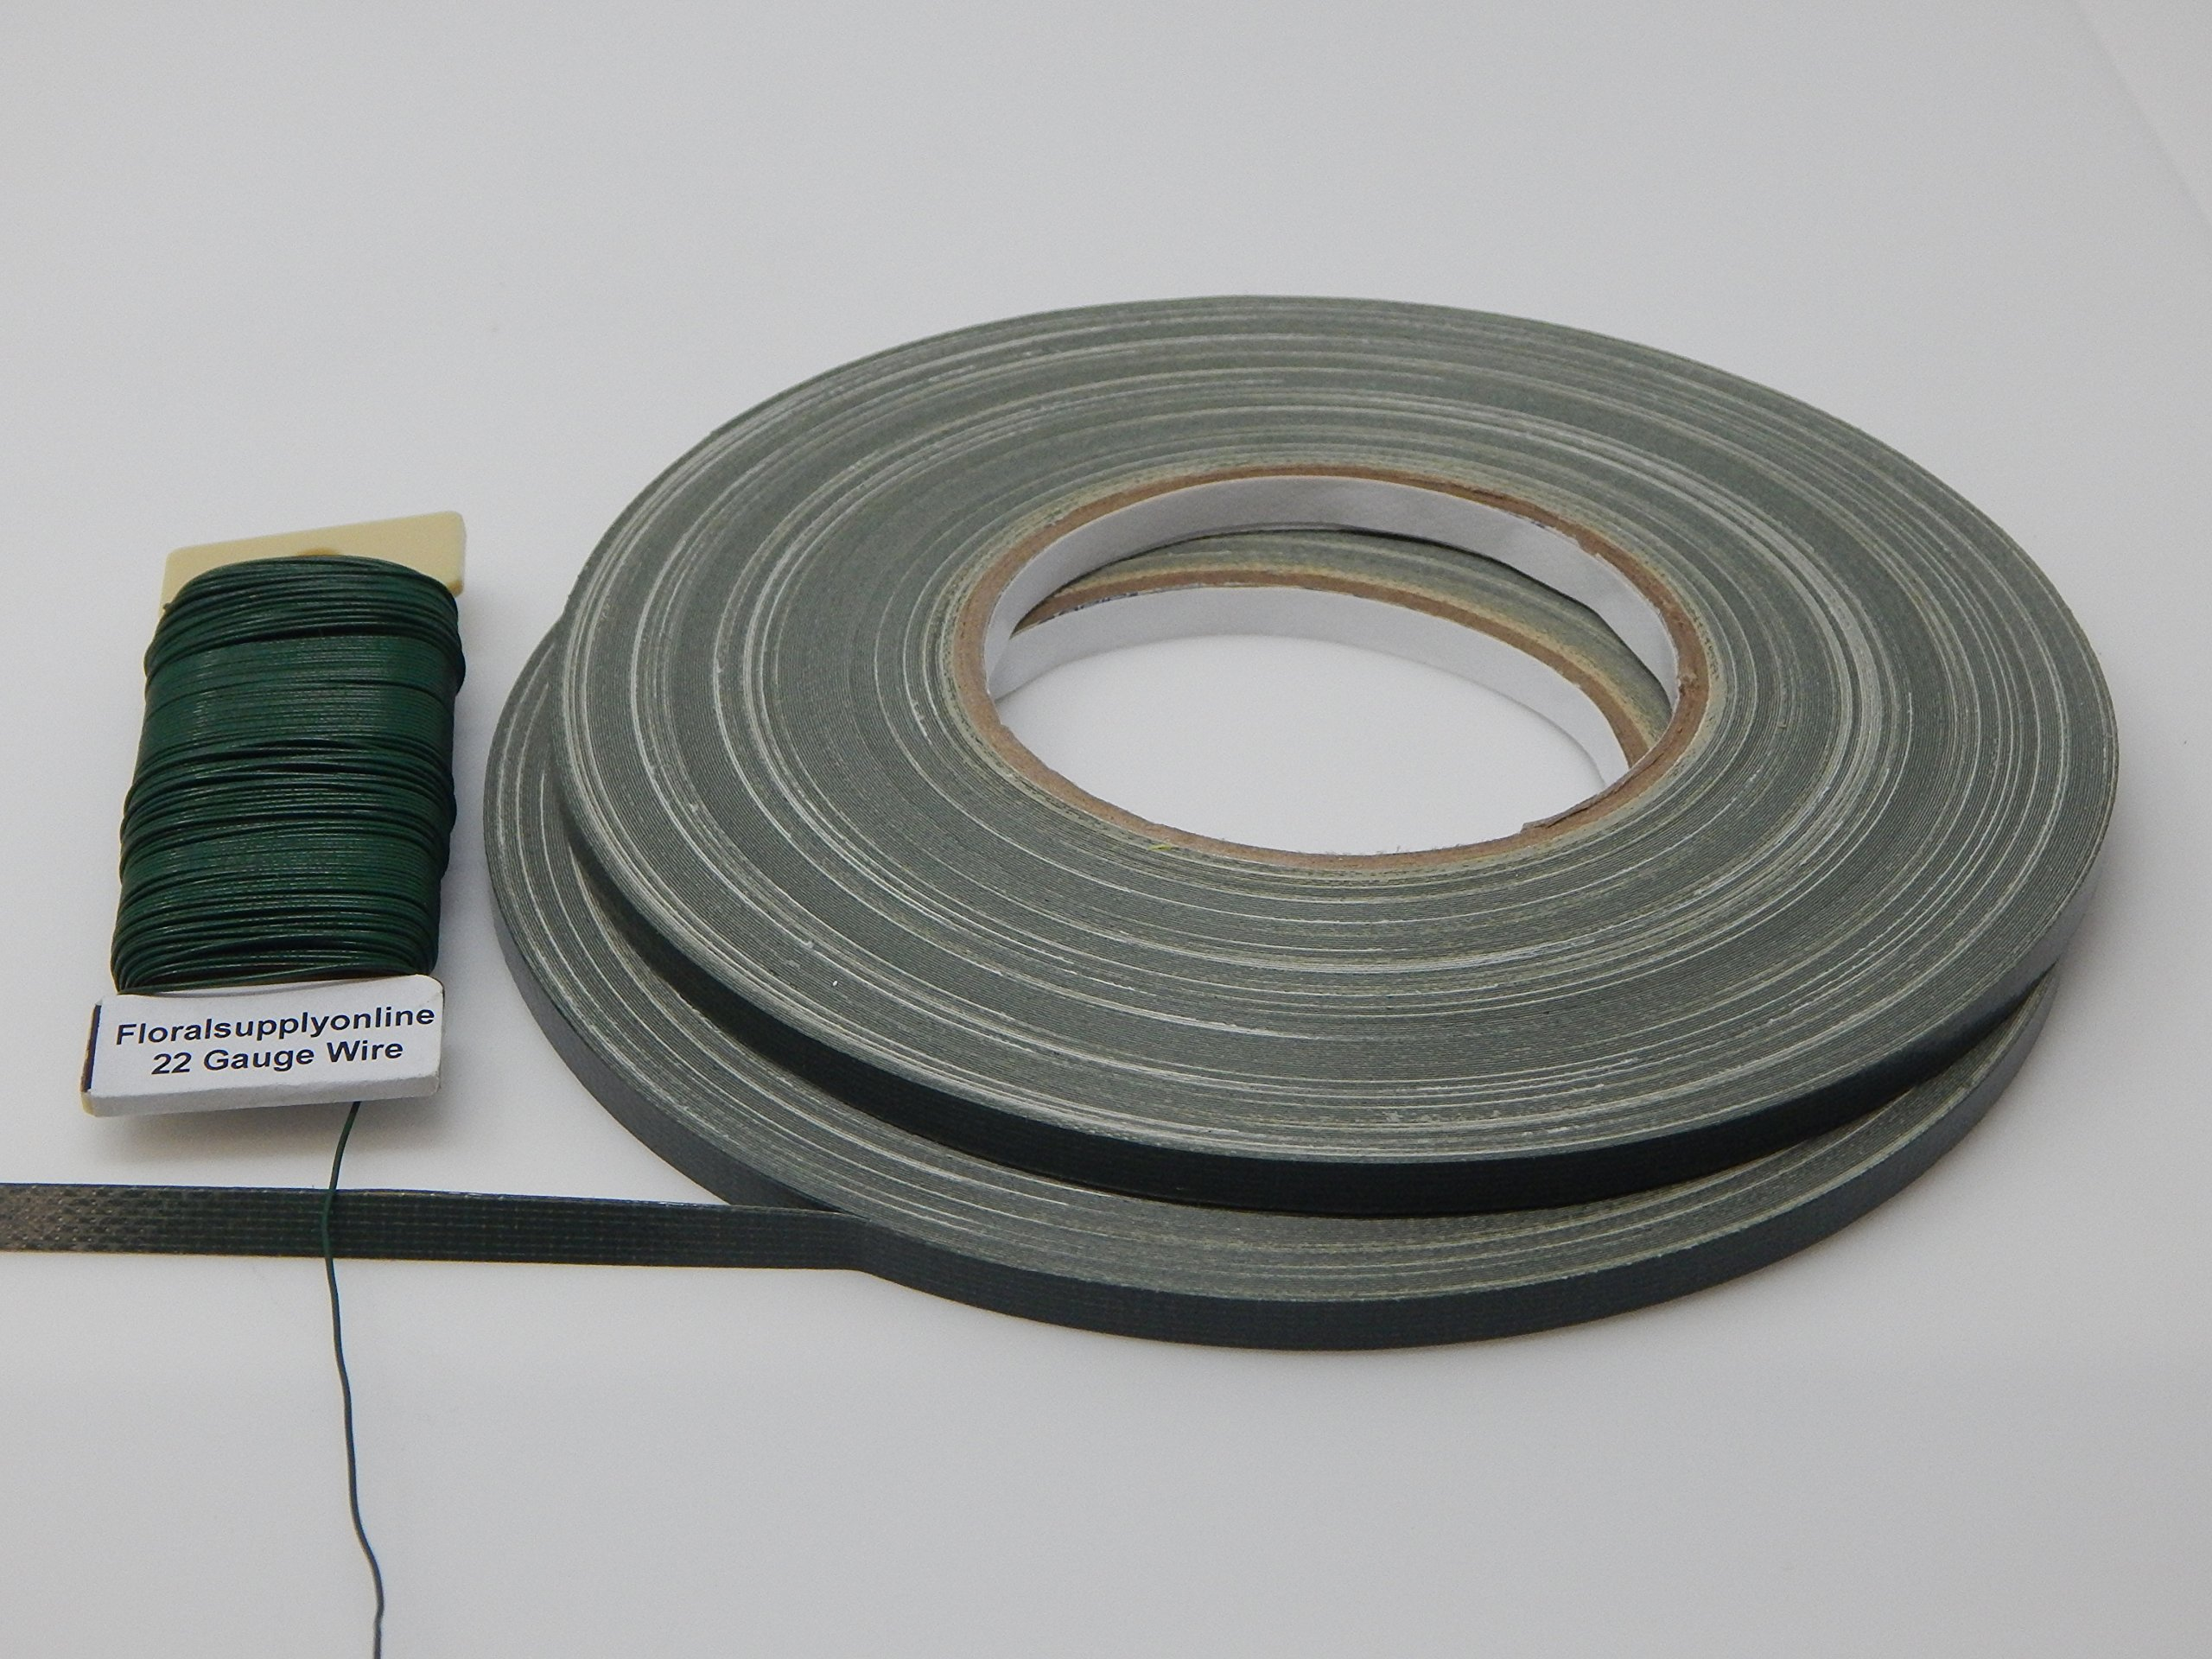 Green Floral Tape - 2 Rolls of 1/4'' Green Waterproof Tape. Bonus pack also includes 22 Gauge Floral Wire.